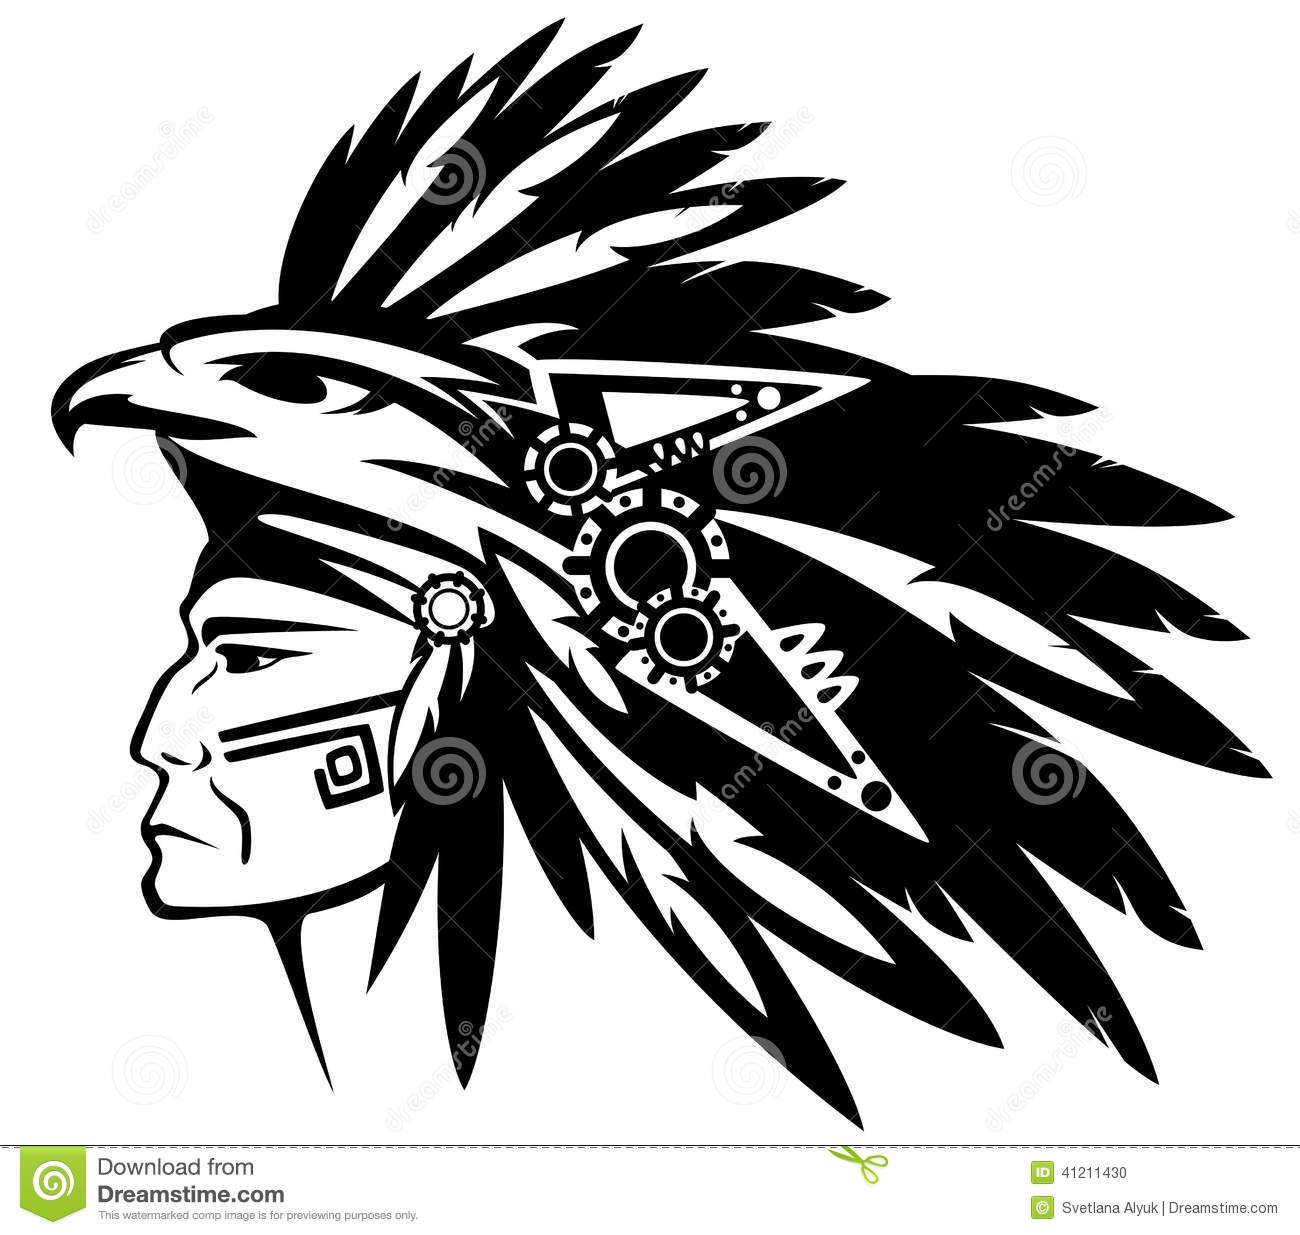 Aztec clipart number 1 clip art royalty free download Aztec clipart number 1 - ClipartFox clip art royalty free download